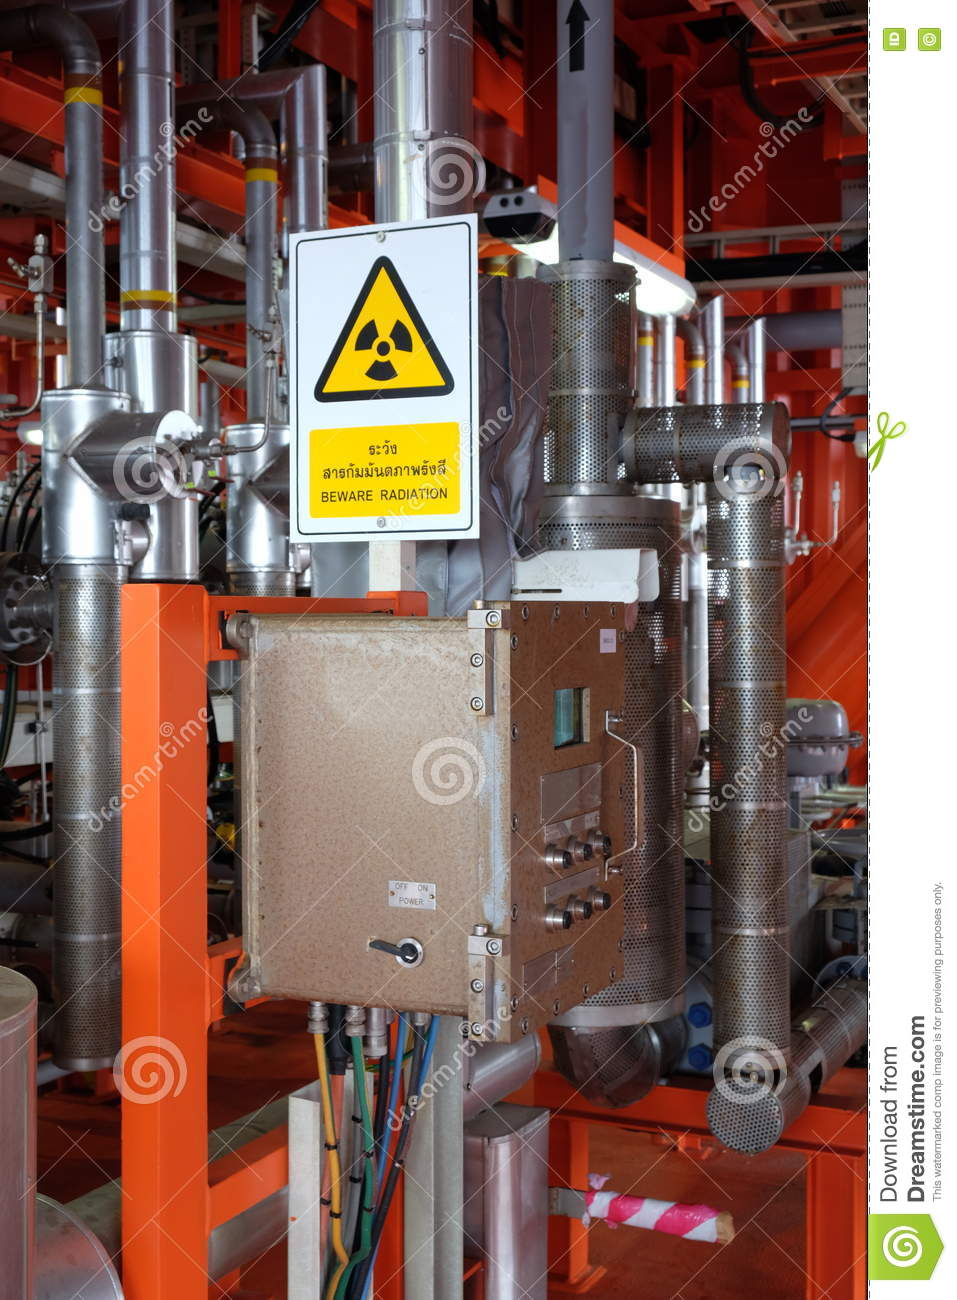 Radiation Caution On Multi Phase Flow Meter On Oil And Gas Platform